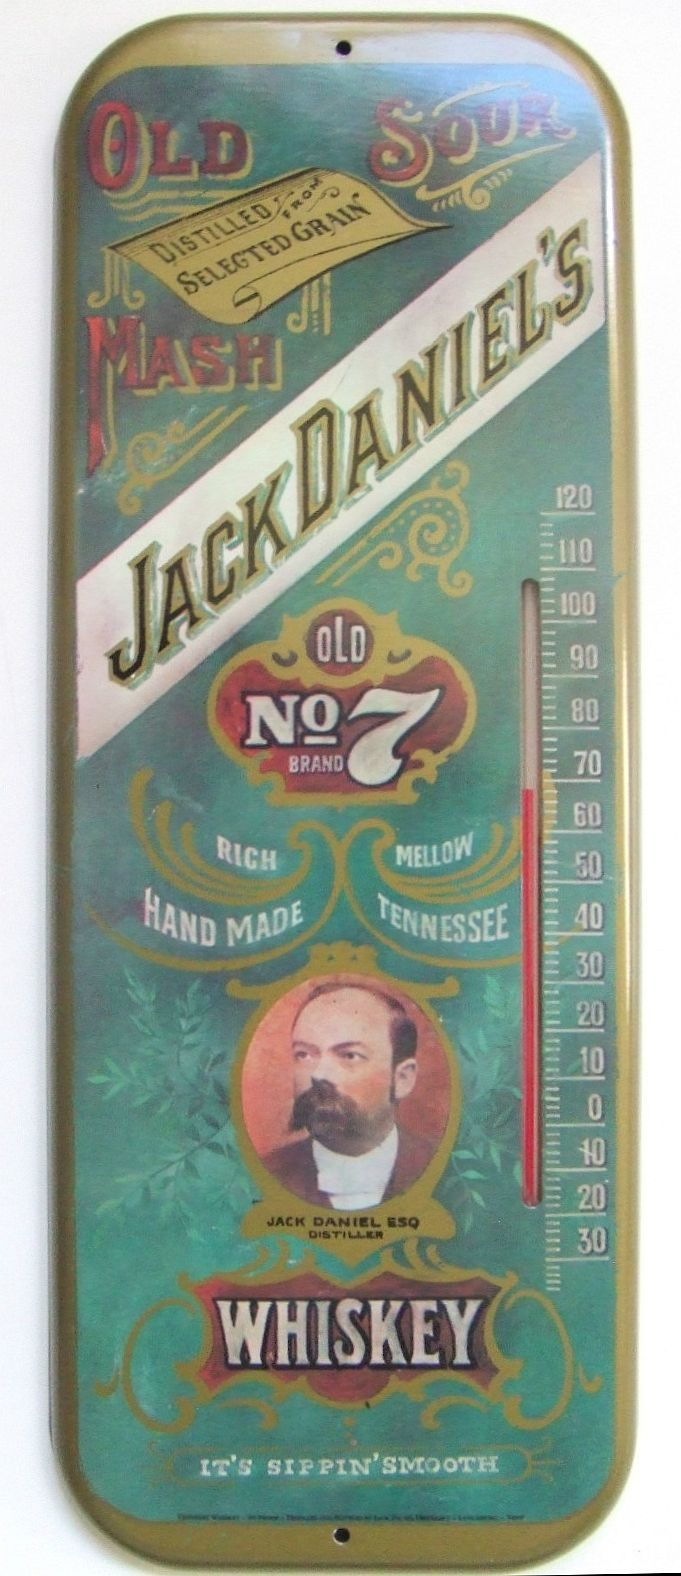 Jack Daniel's Antique Thermometer  (Old Sour Mash Old No 7 Whiskey, Vintage Advertising Thermometers)